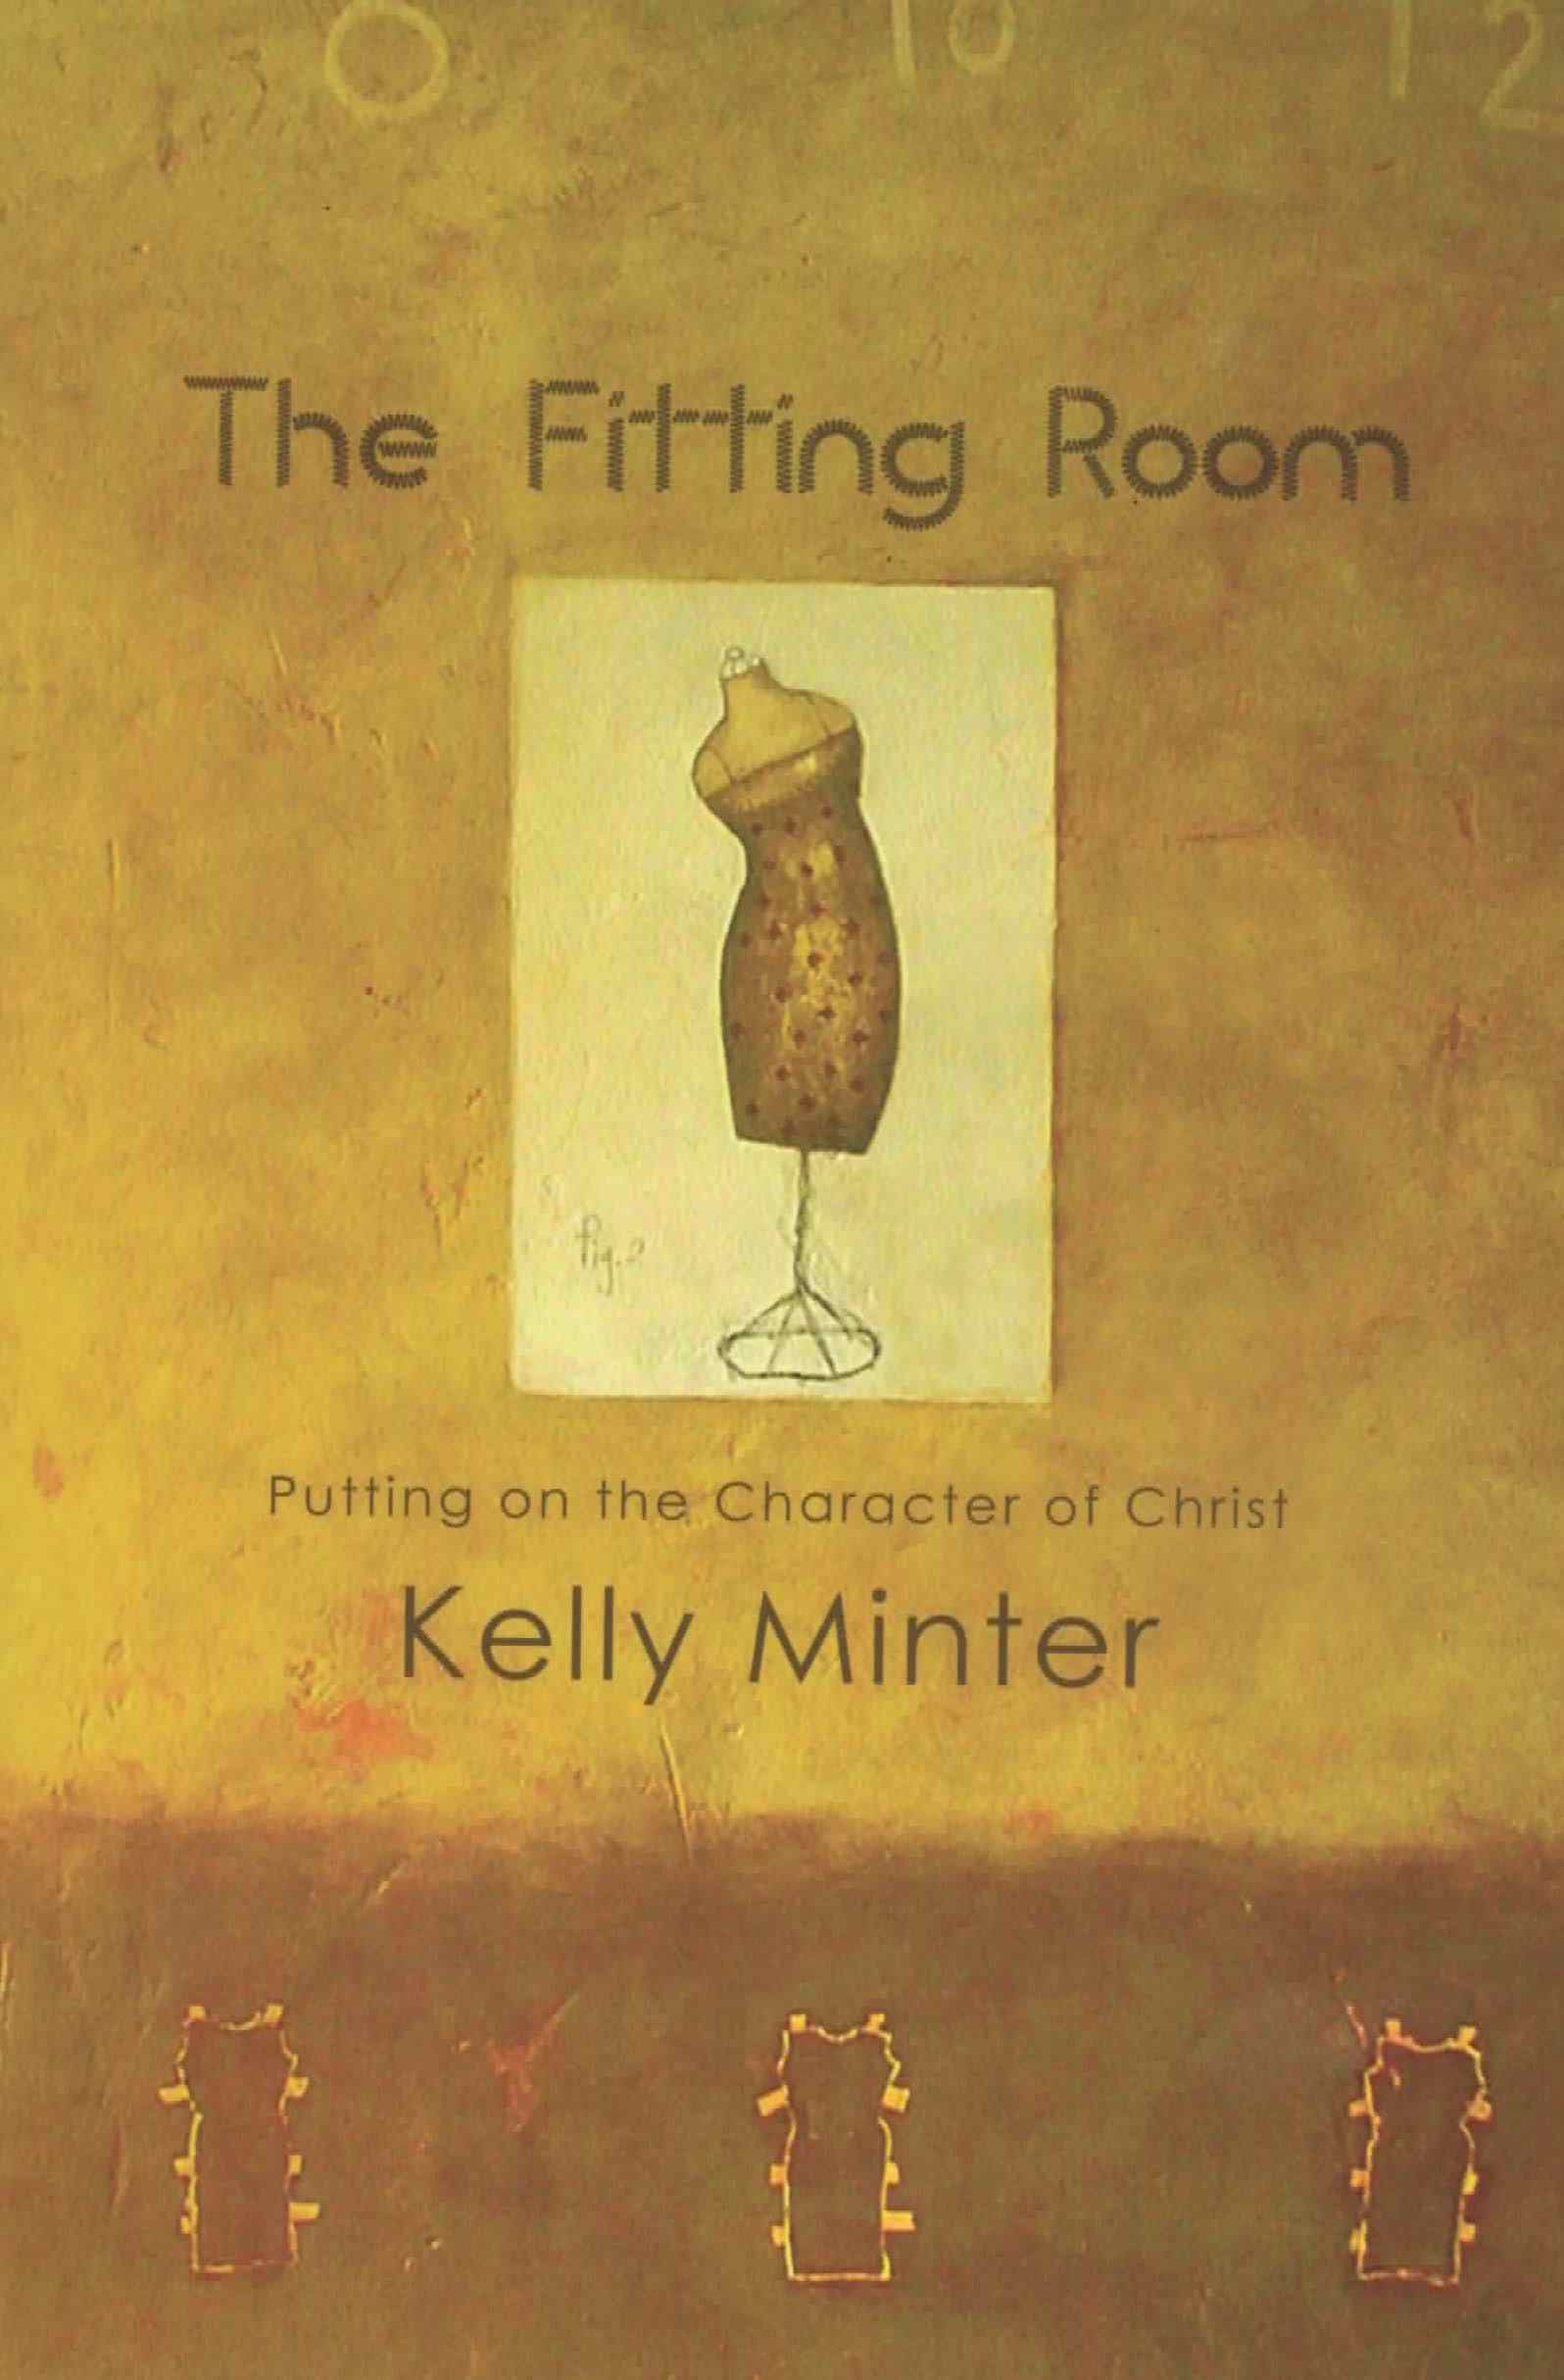 The Fitting Room - Putting on the Character of Christ